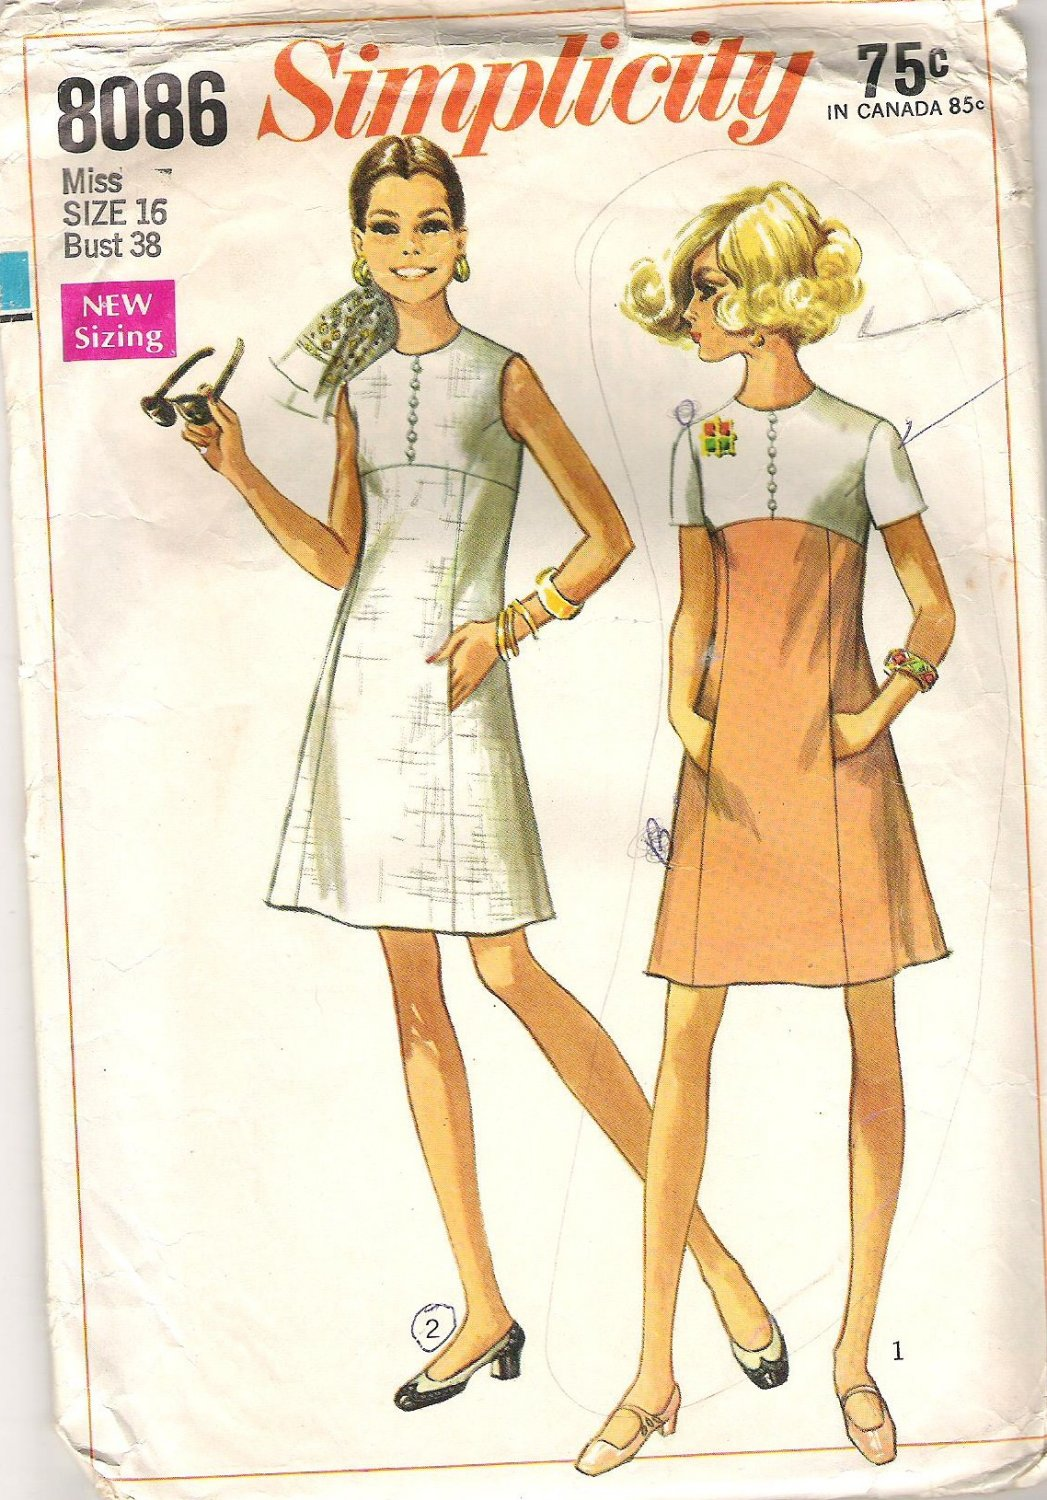 1969 Simplicity 8086 Pattern Vintage Dress Princess Line Skirt Button Trimmed Bodice  Size 16  Cut